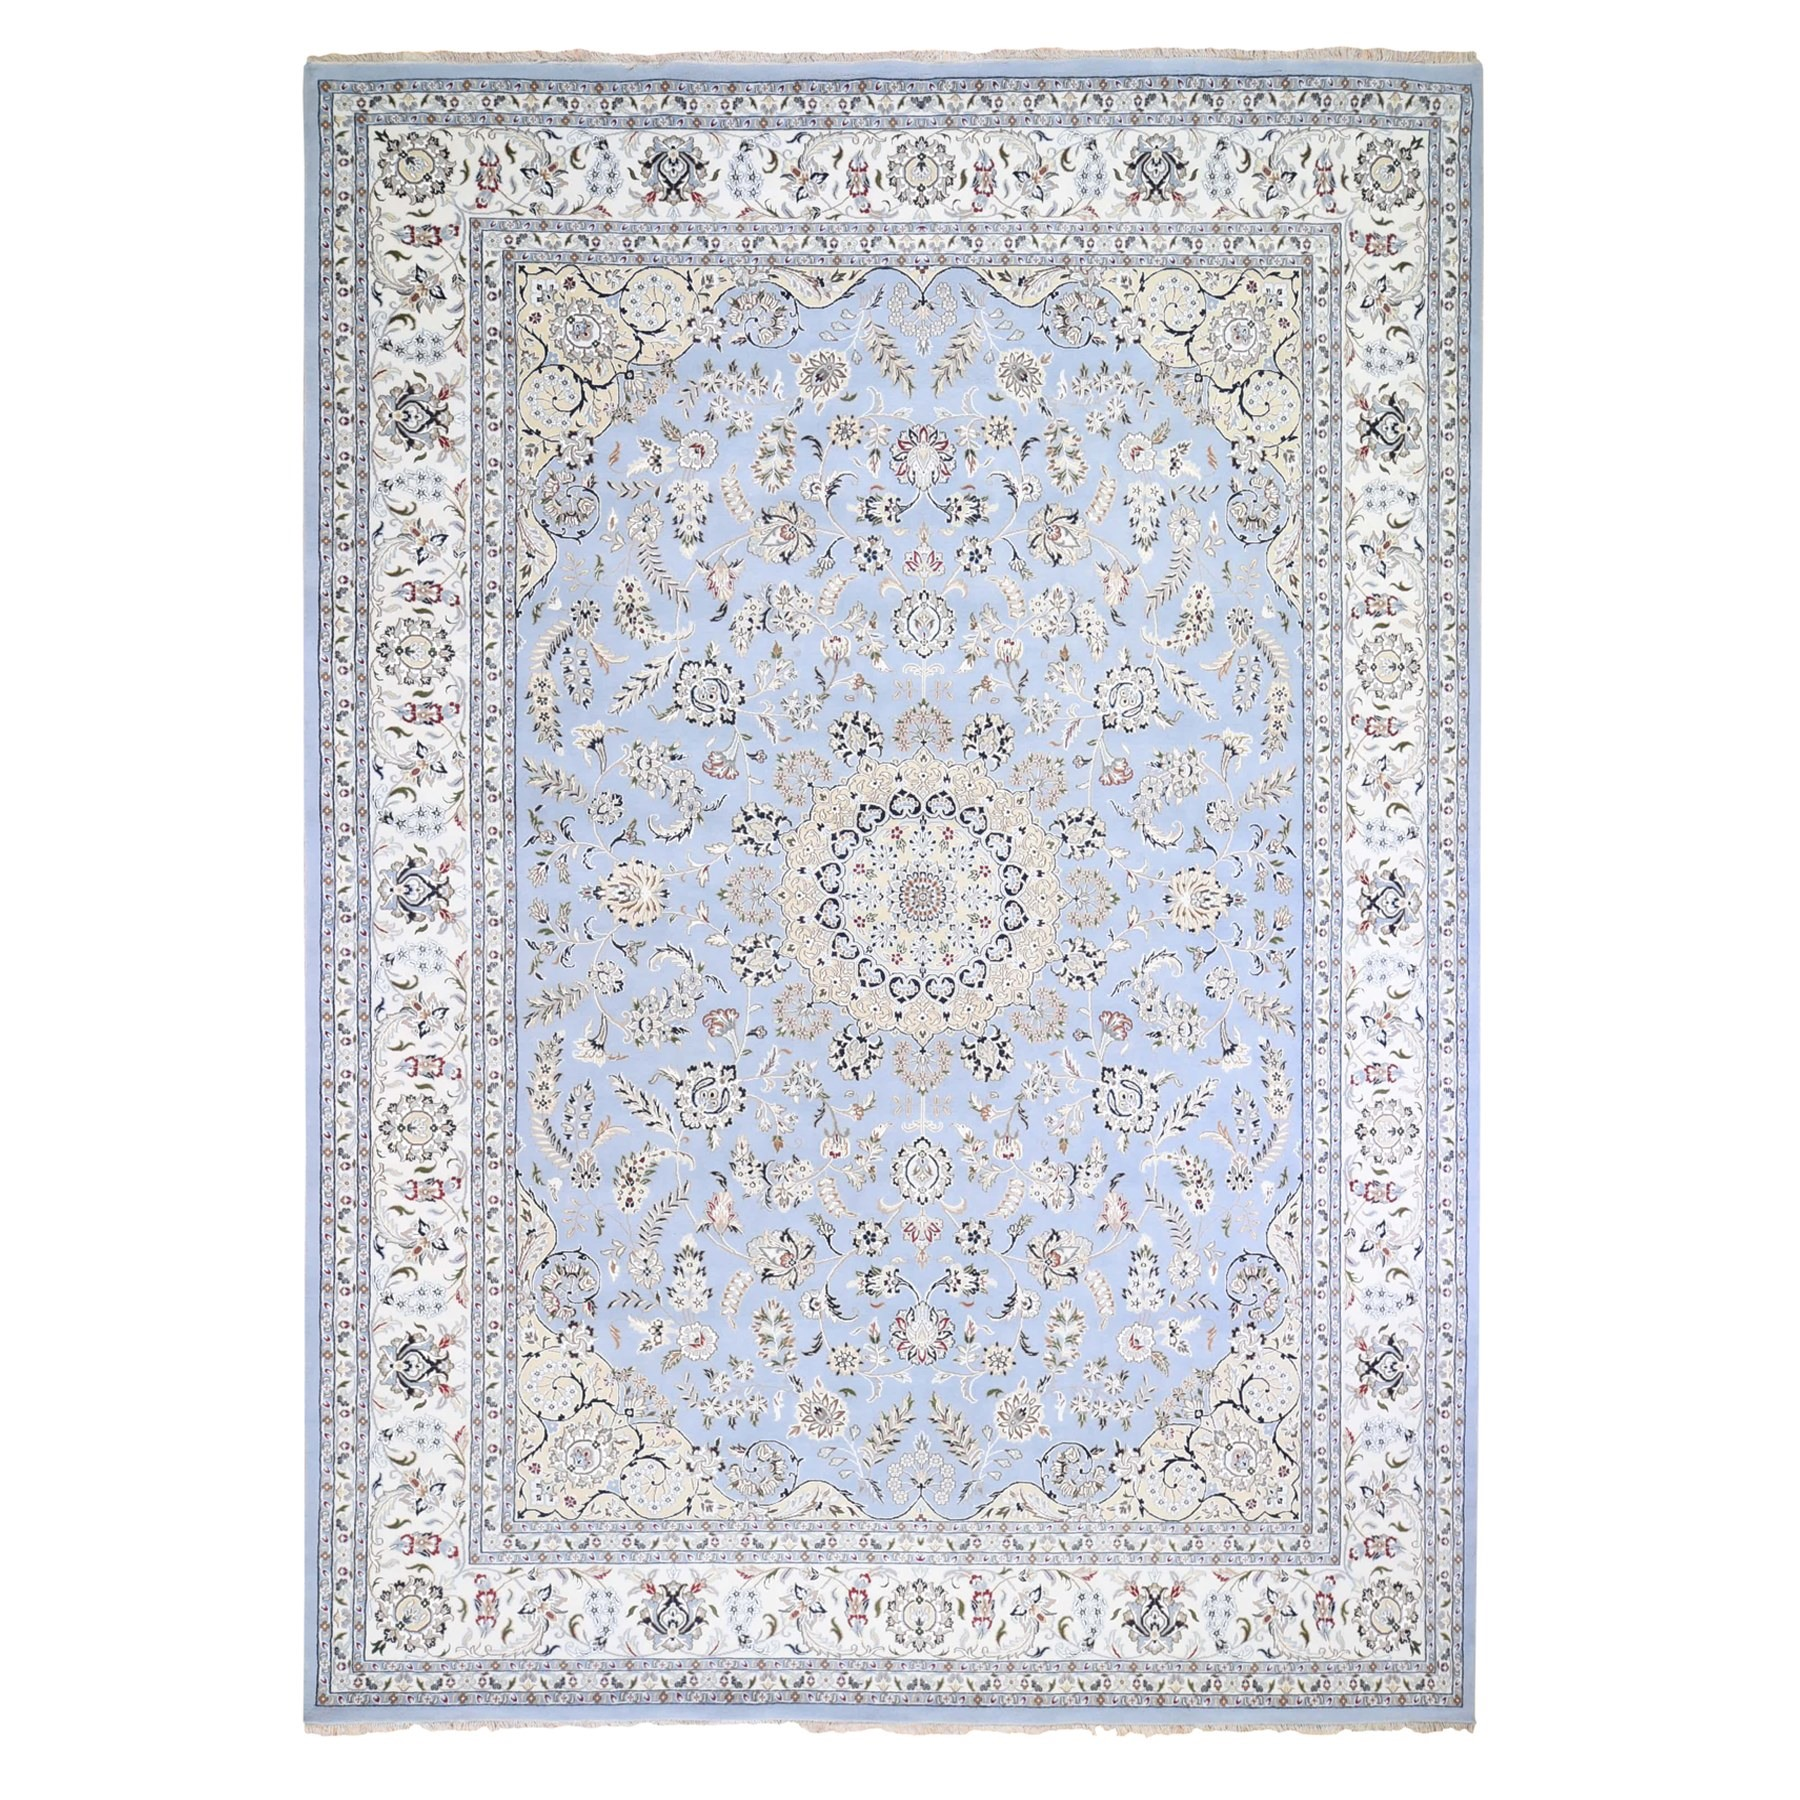 10'x14' Light Blue Nain Wool and Silk 250 KPSI Hand Knotted Oriental Rug